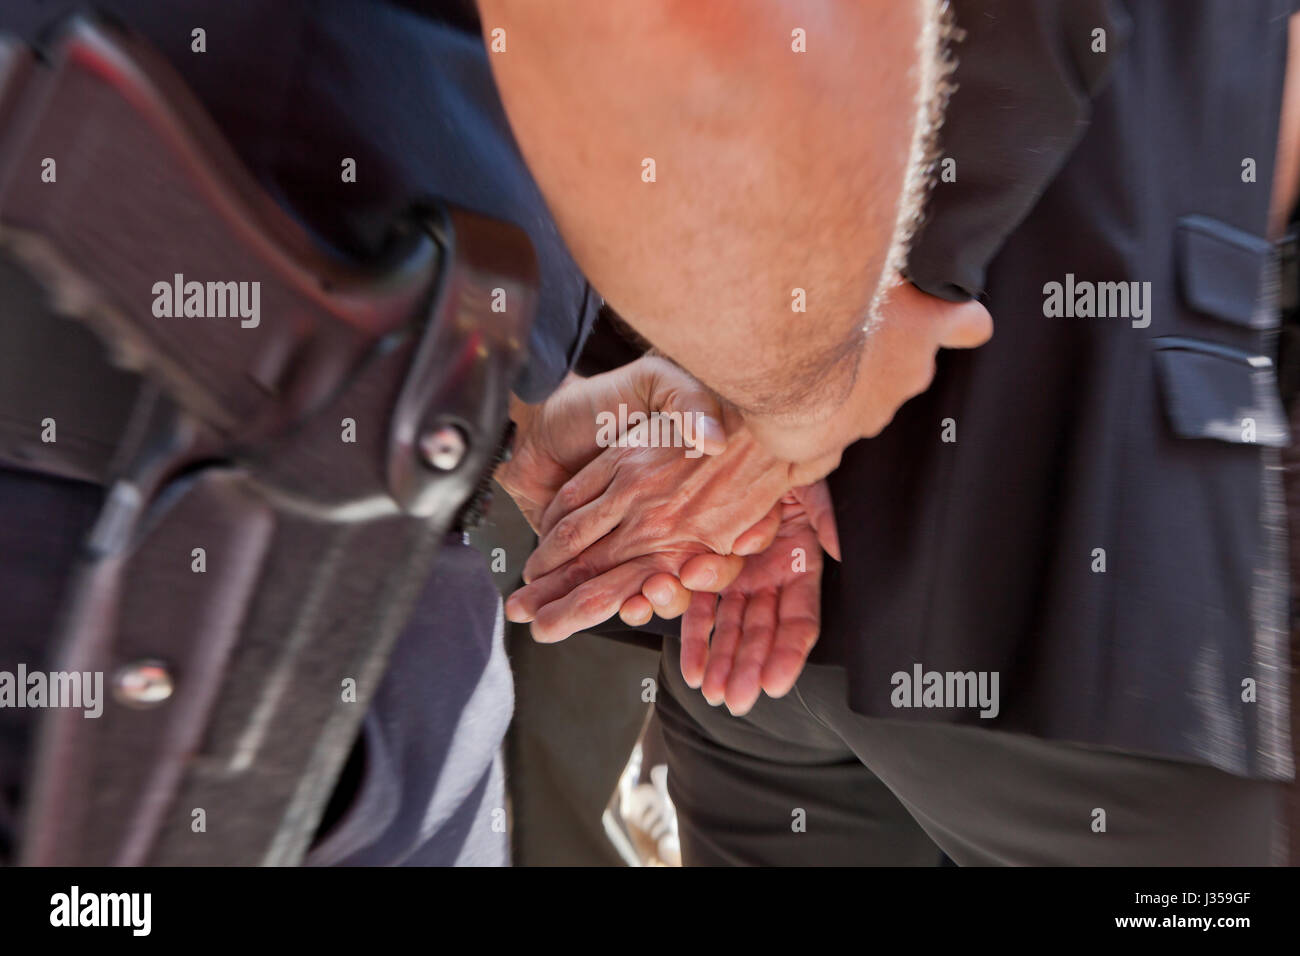 Woman being arrested and handcuffed by police - USA - Stock Image